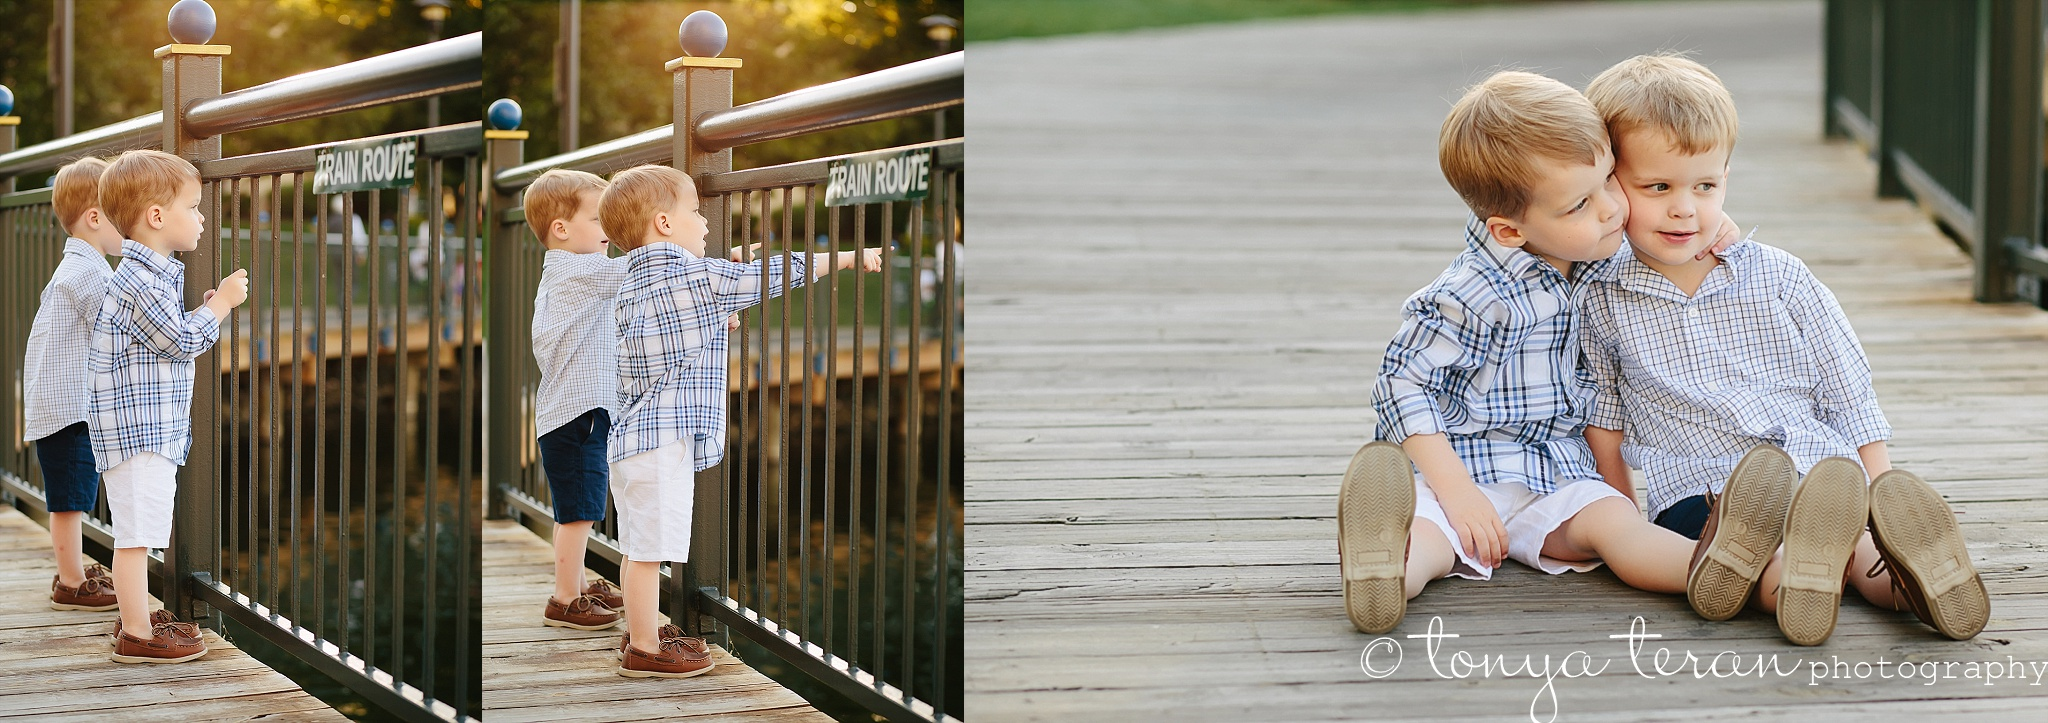 Spring Outdoor Family Photo Session | Tonya Teran Photography, Bethesda, MD Newborn, Baby, and Family Photographer